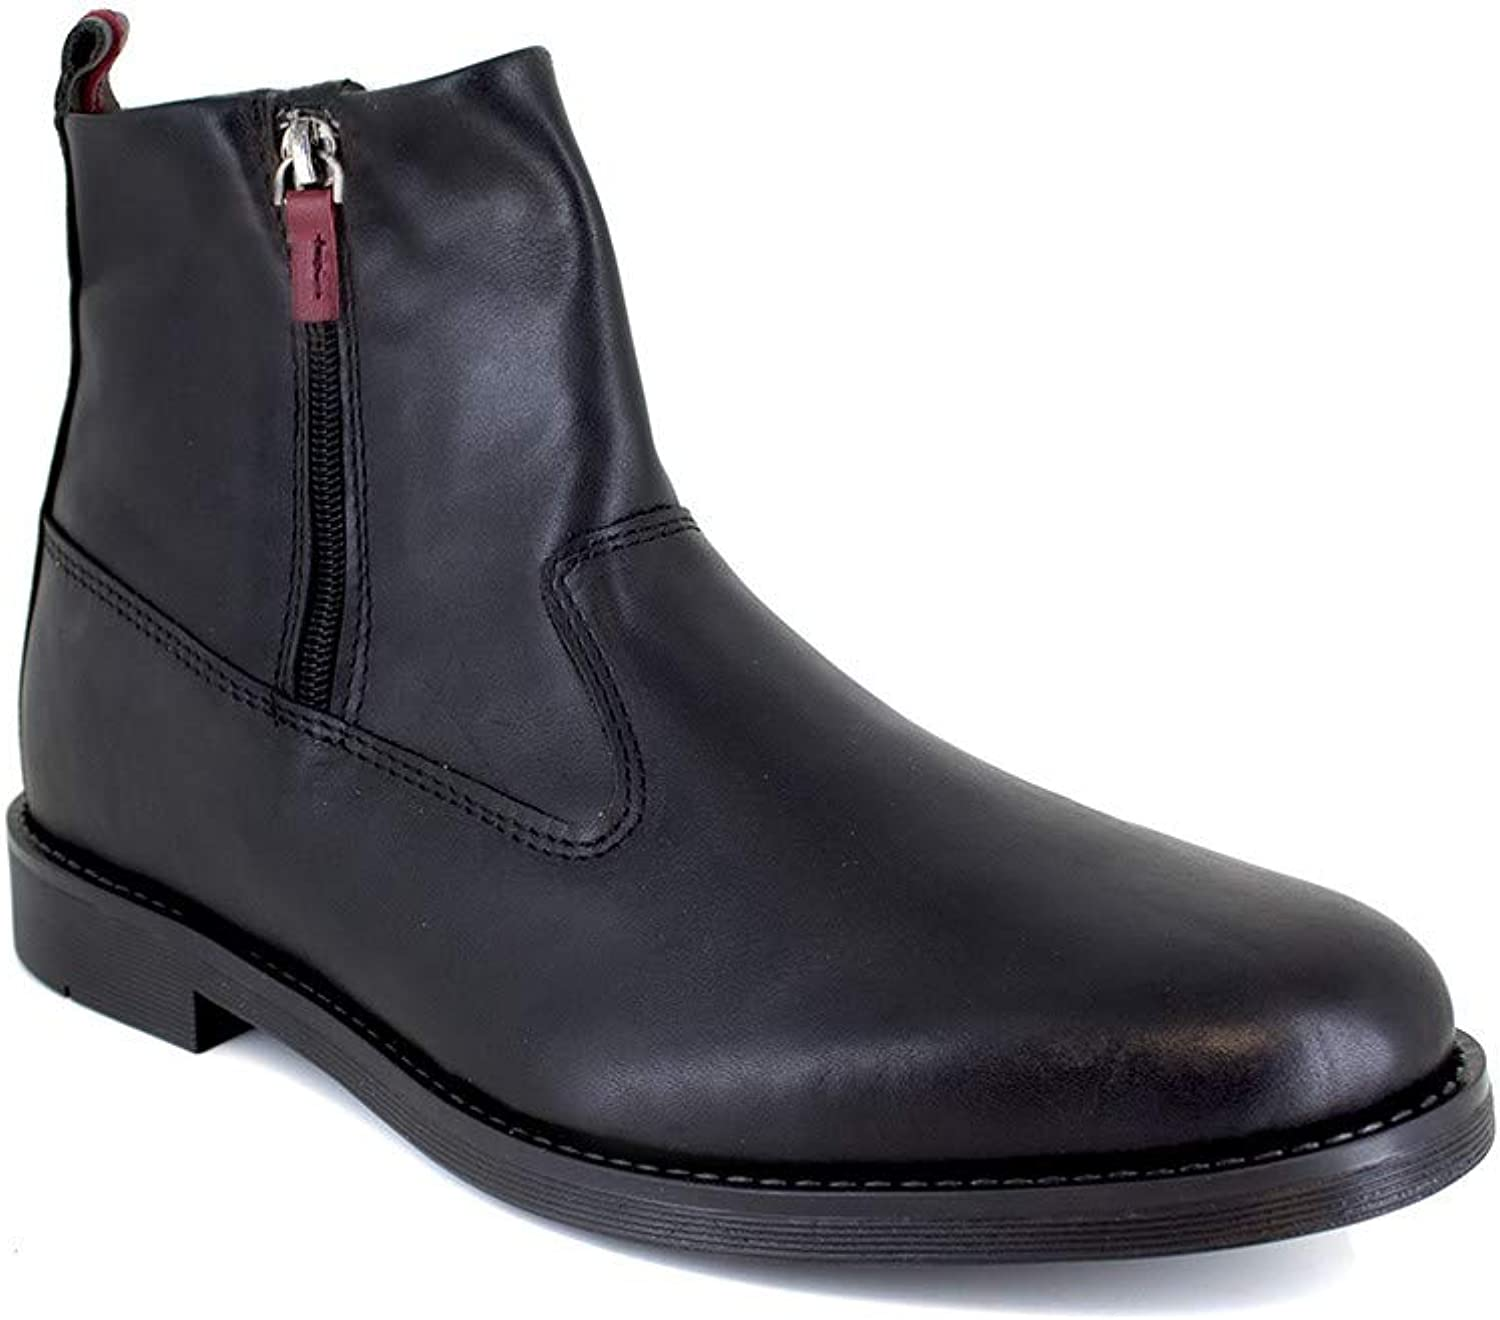 J.Bradford Low Boots Black Leather JB-CARERA